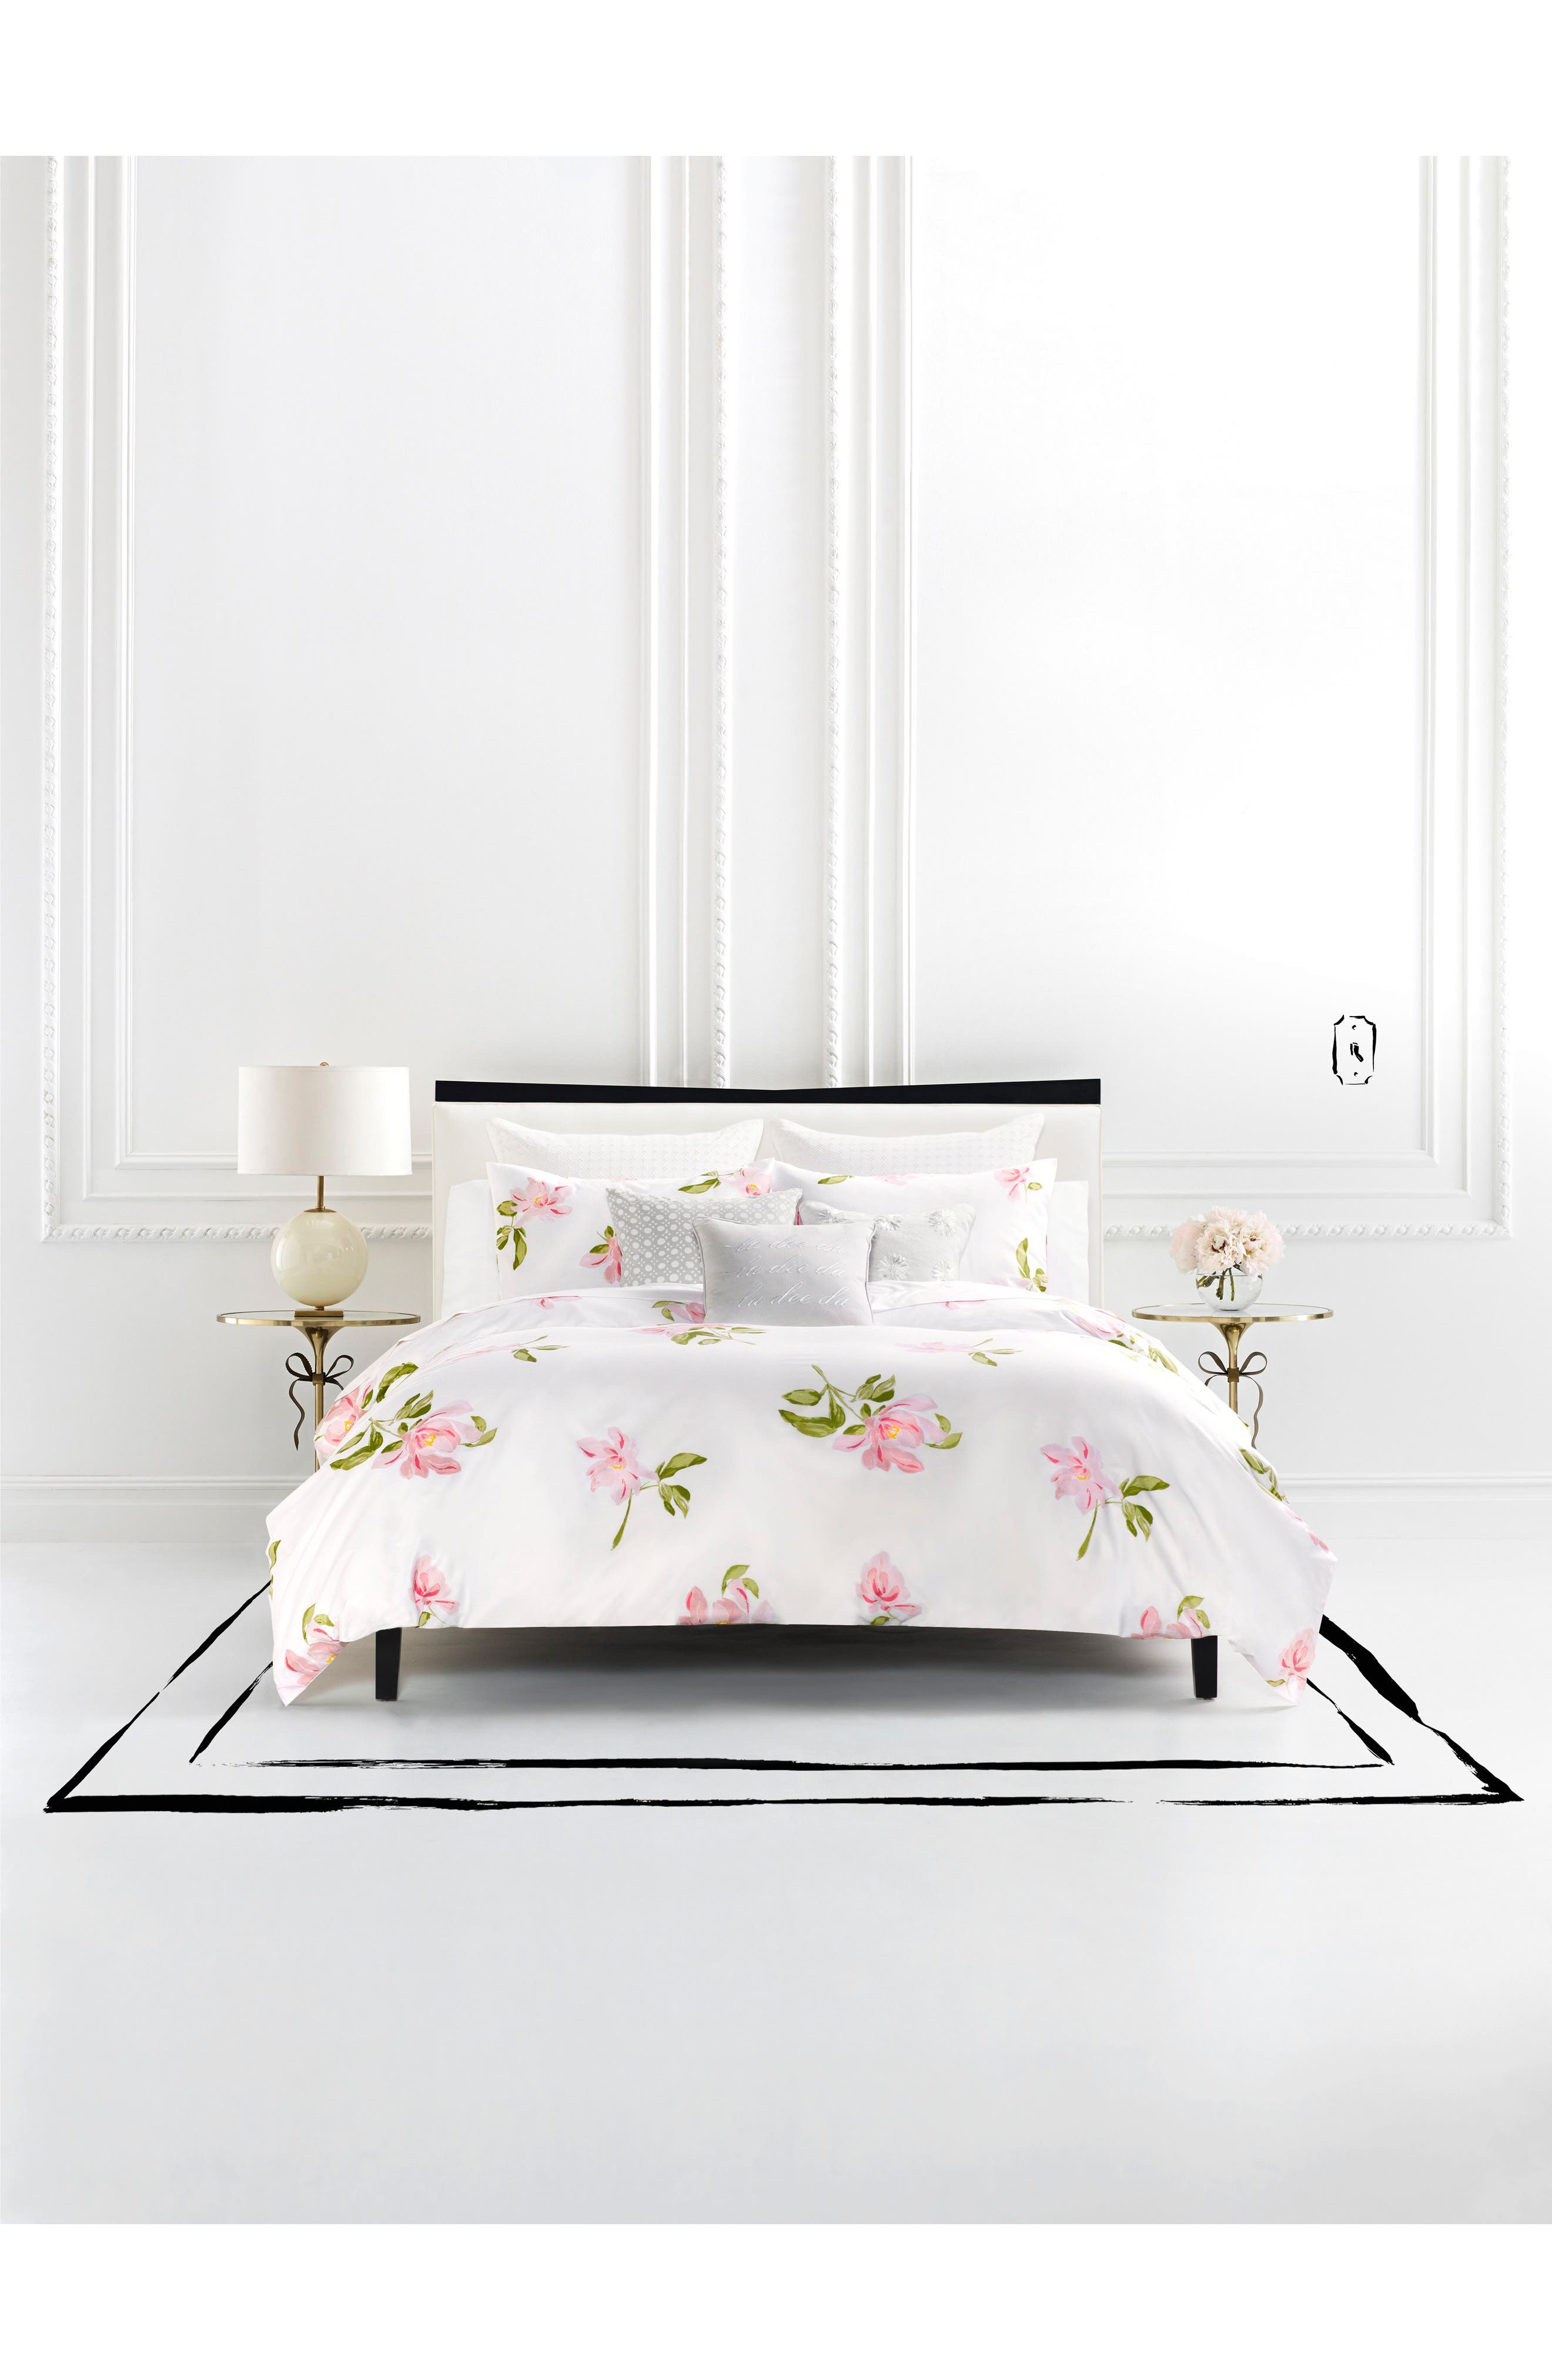 breezy magnolia duvet cover & sham set,                         Main,                         color, WHITE